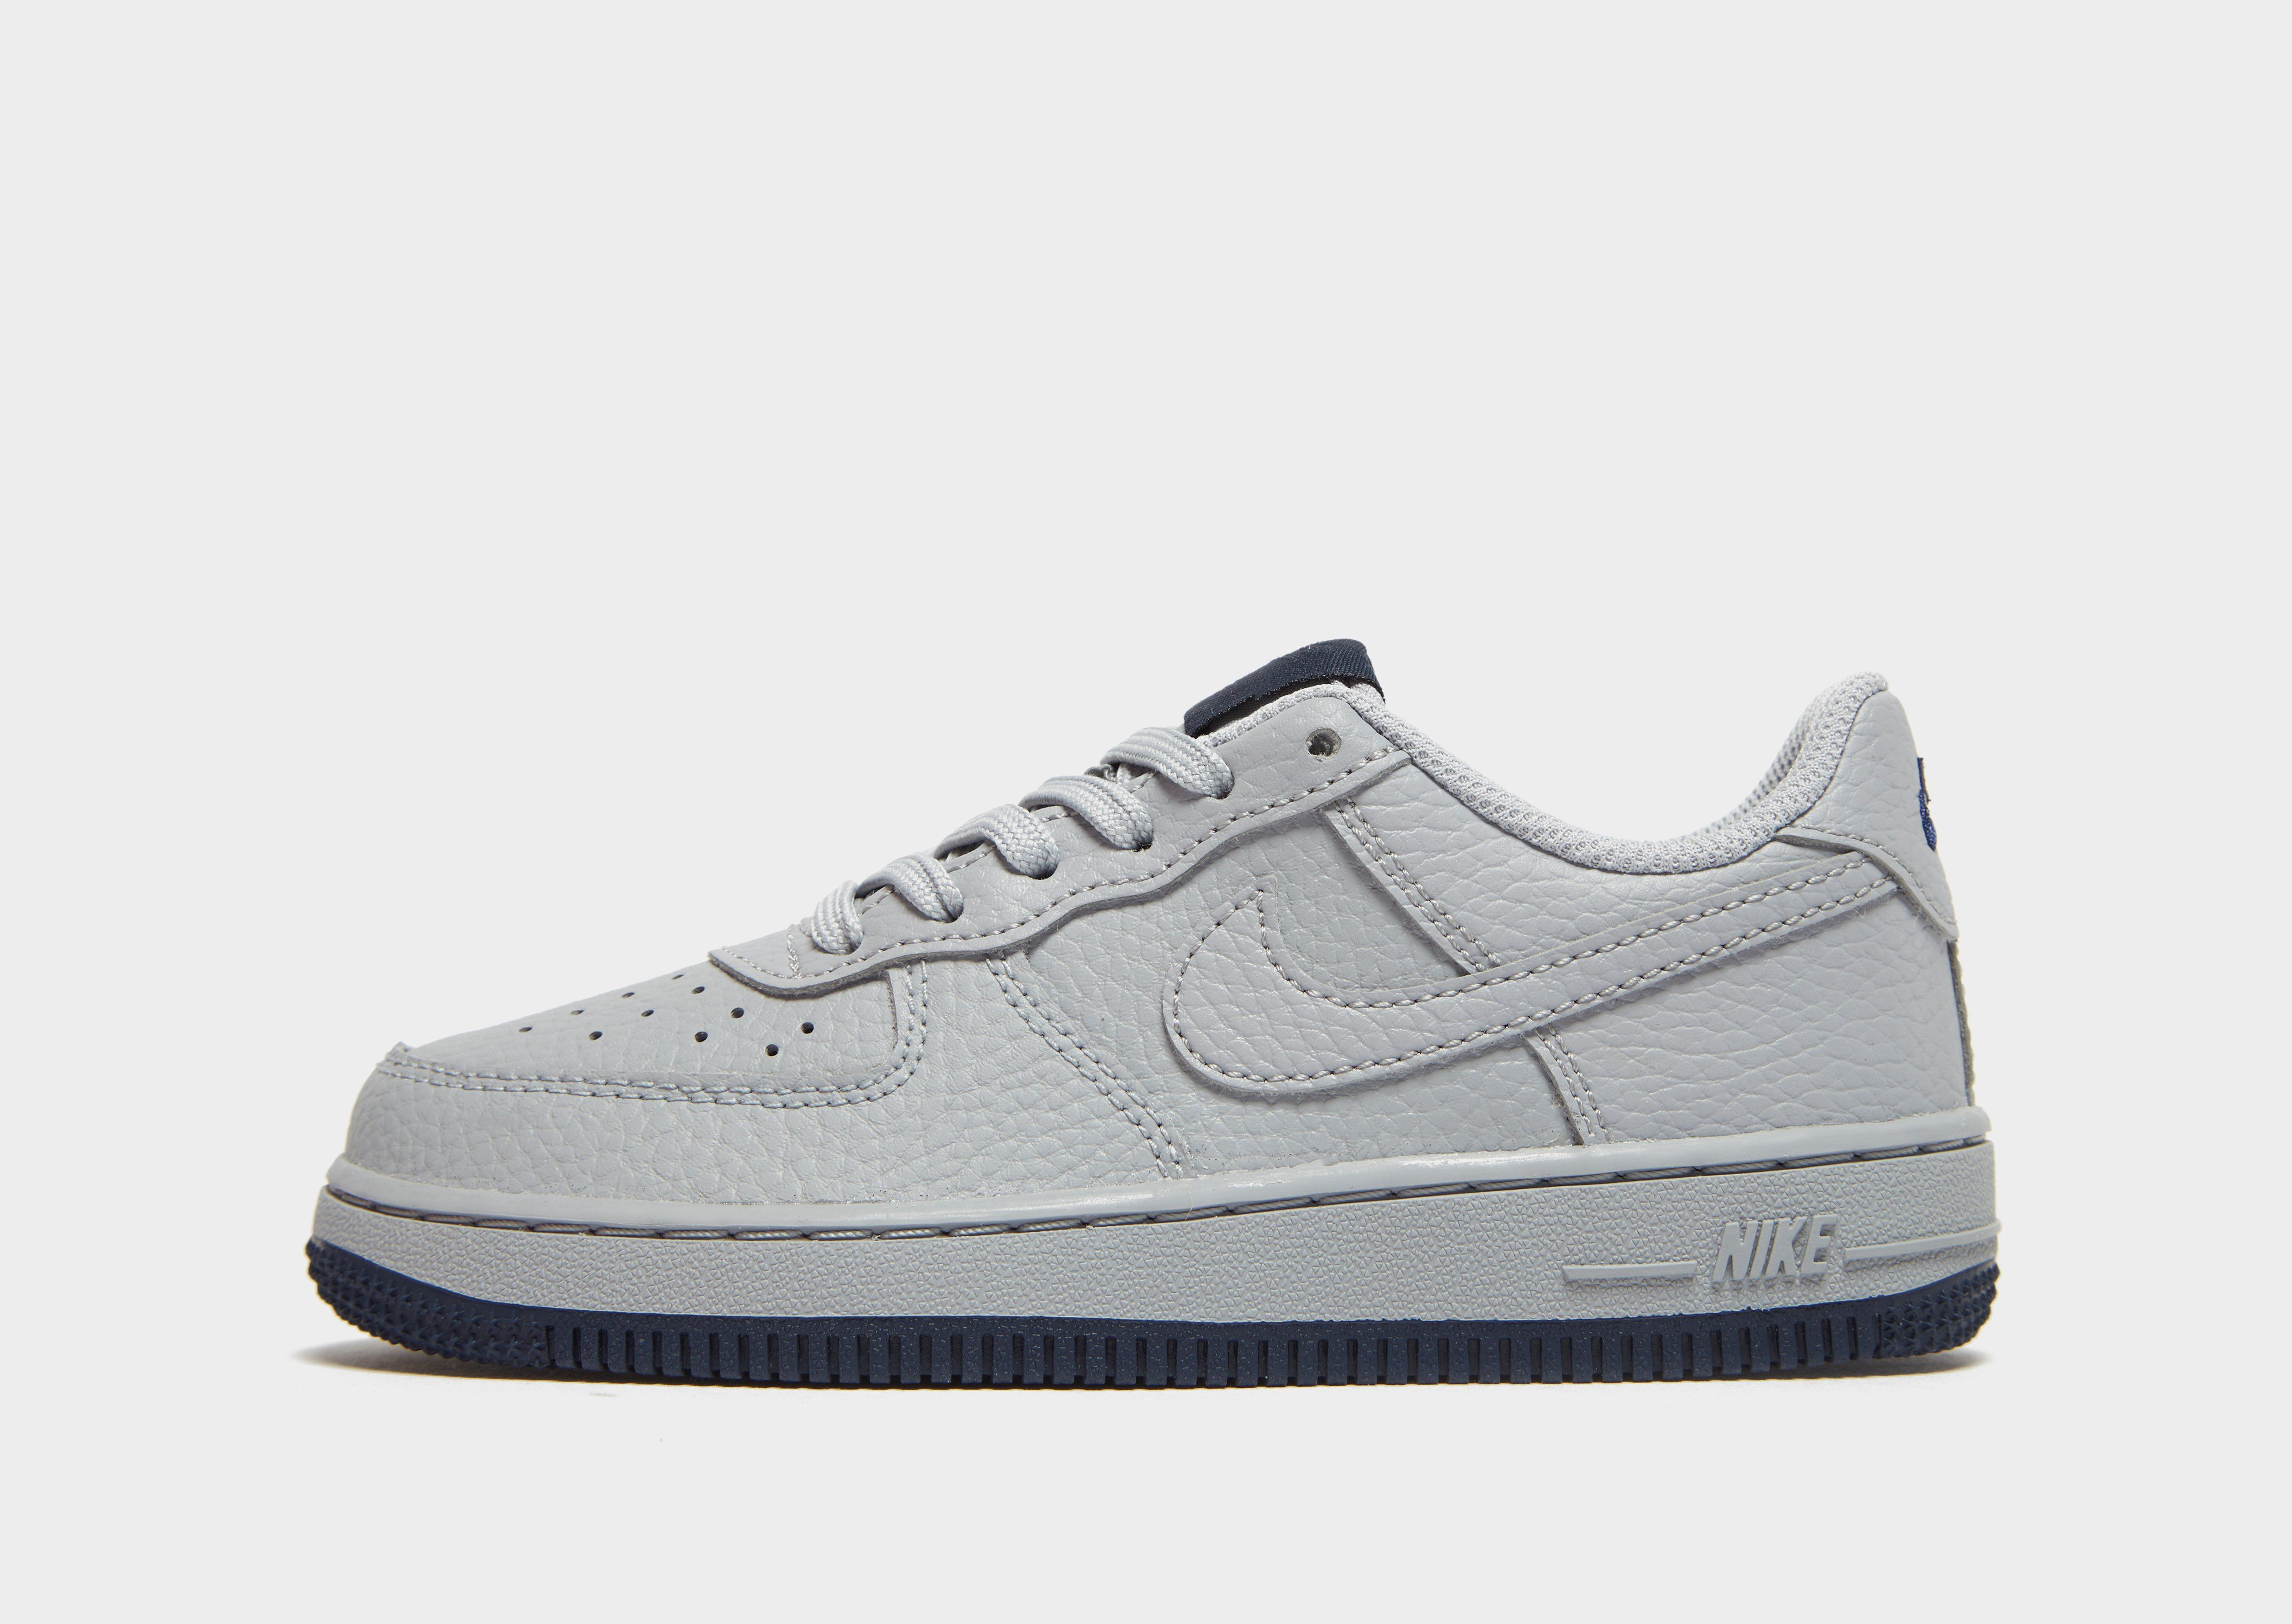 nouveau style 6acdf a1c09 Nike Force 1 LV8 Younger Kids' Shoe | JD Sports